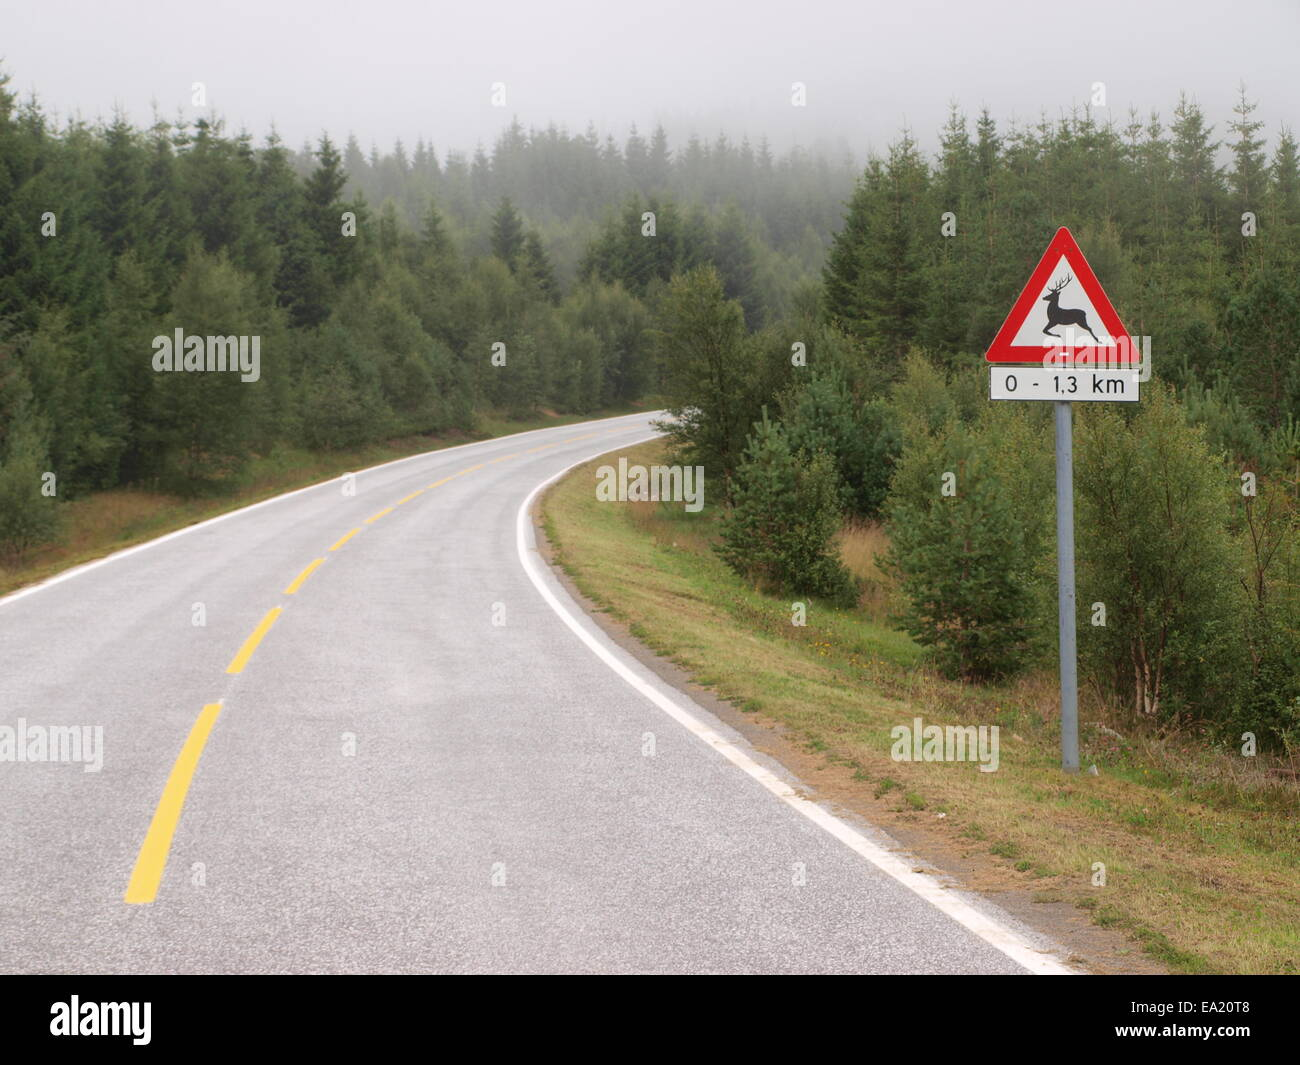 Animal crossing traffic sign in lappland - Stock Image